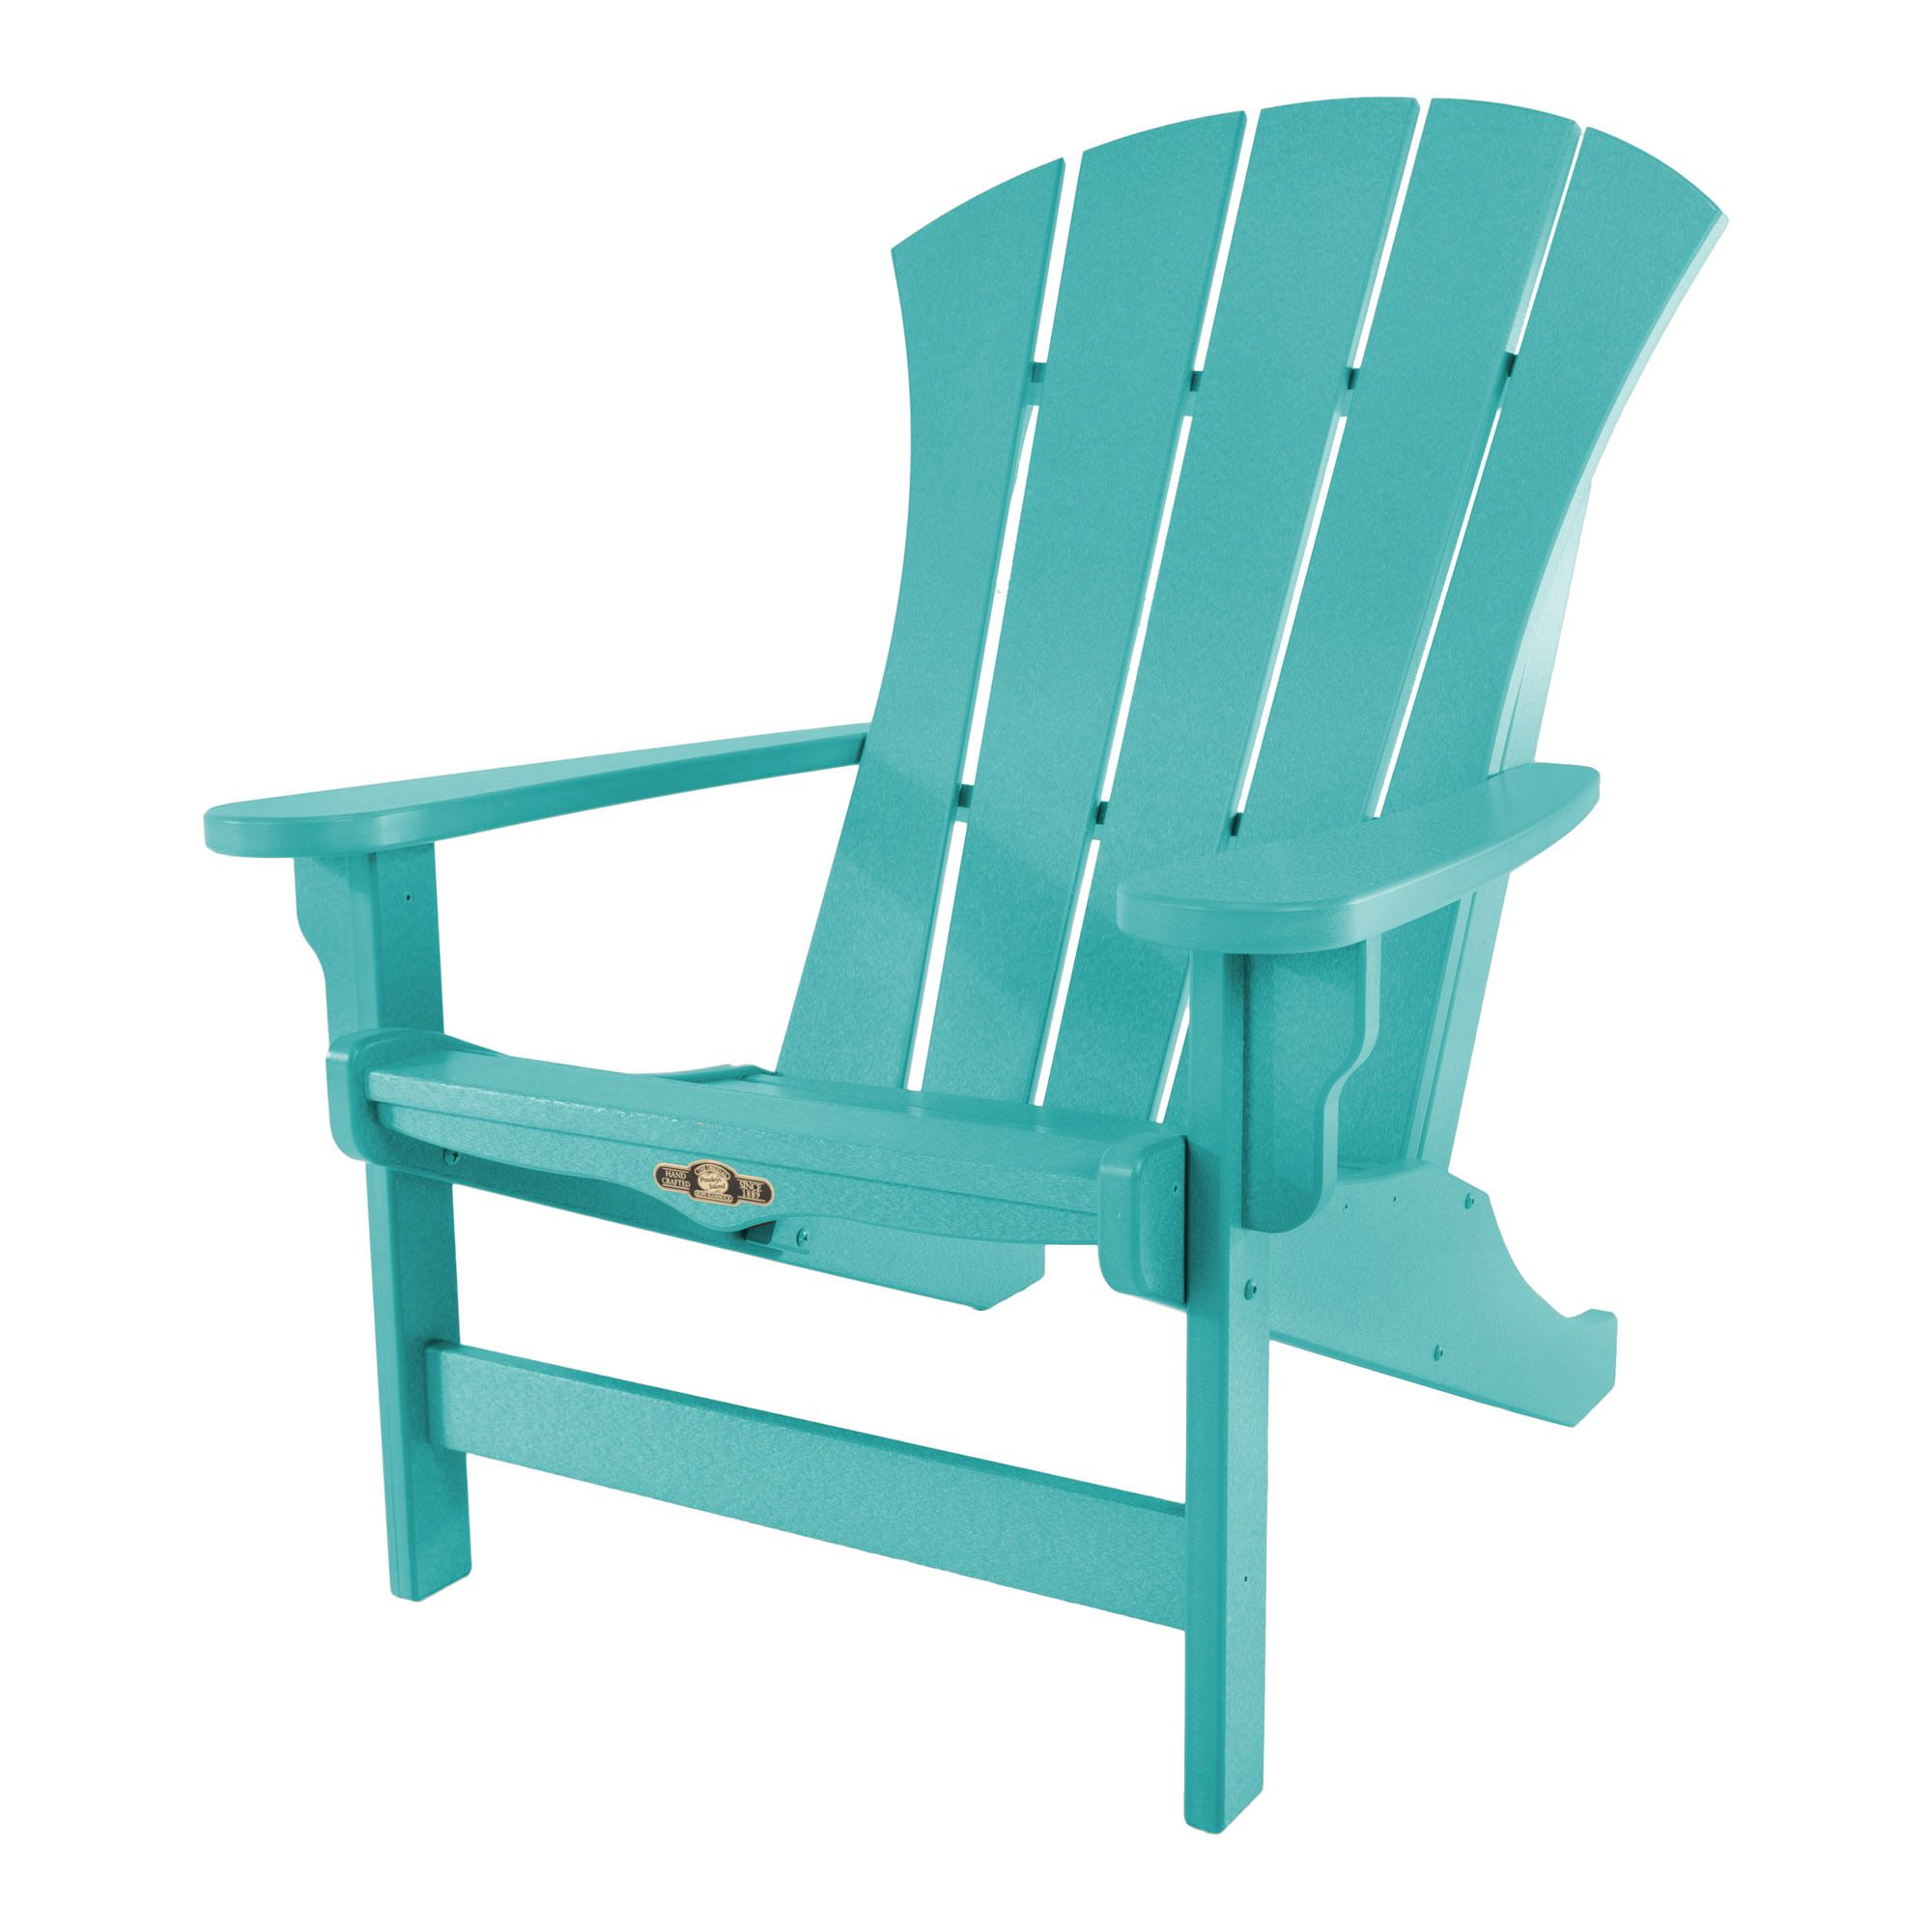 ... Sunrise Adirondack Chair; Sunrise Adirondack Chair